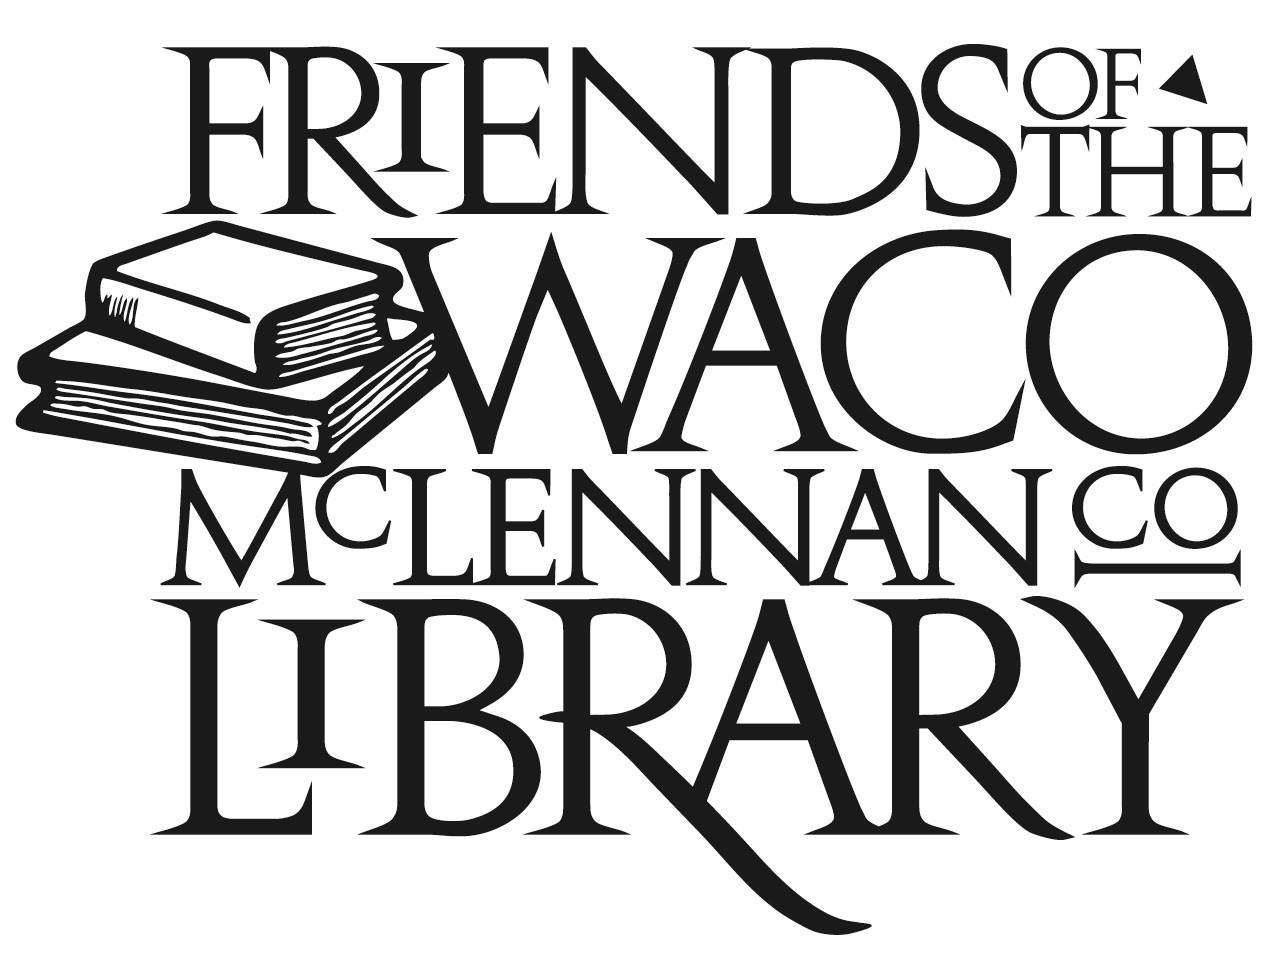 Friends of the Waco McLennan County Library